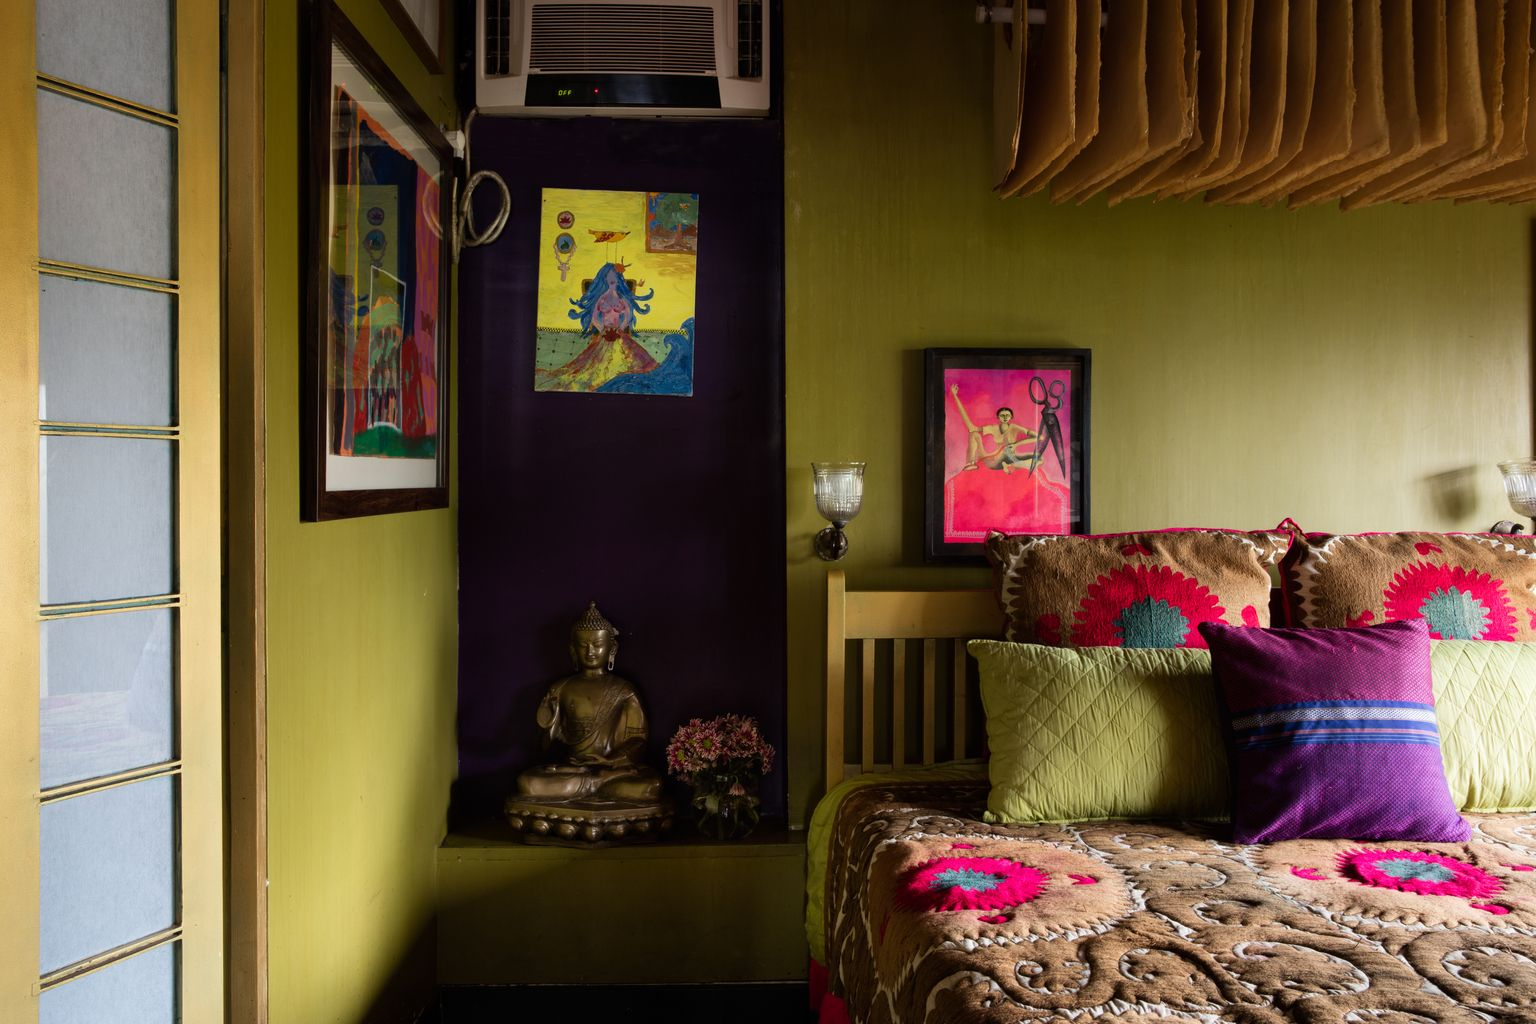 A bedroom with a handmade light fixture above the bed. Image Courtesy:Pankaj Anand